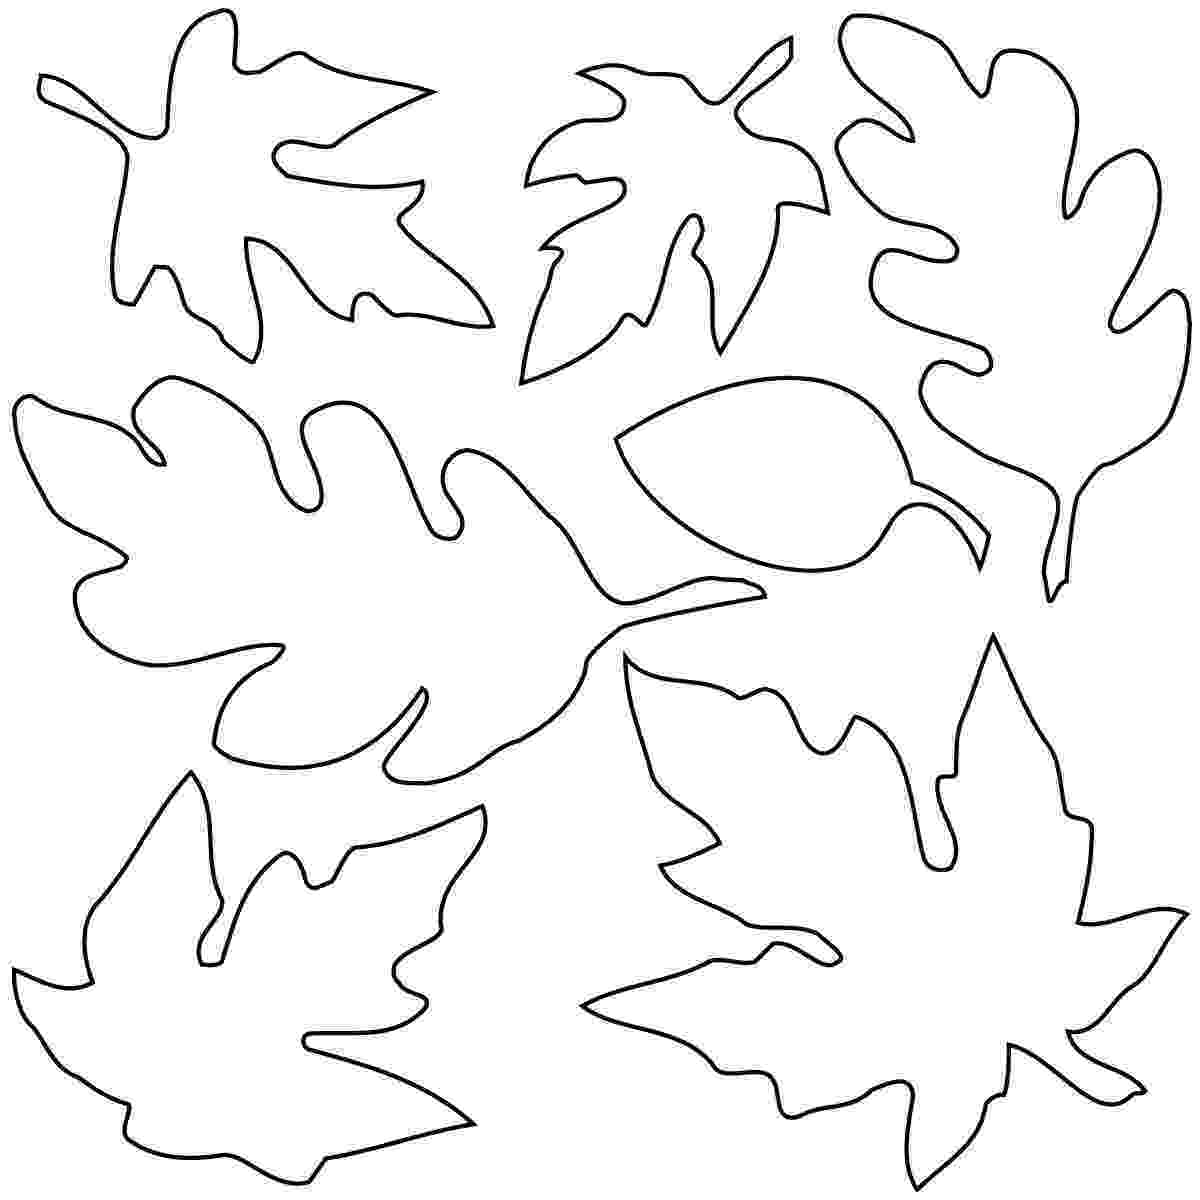 fall leaves print out autumn leaves learningenglish esl print out fall leaves